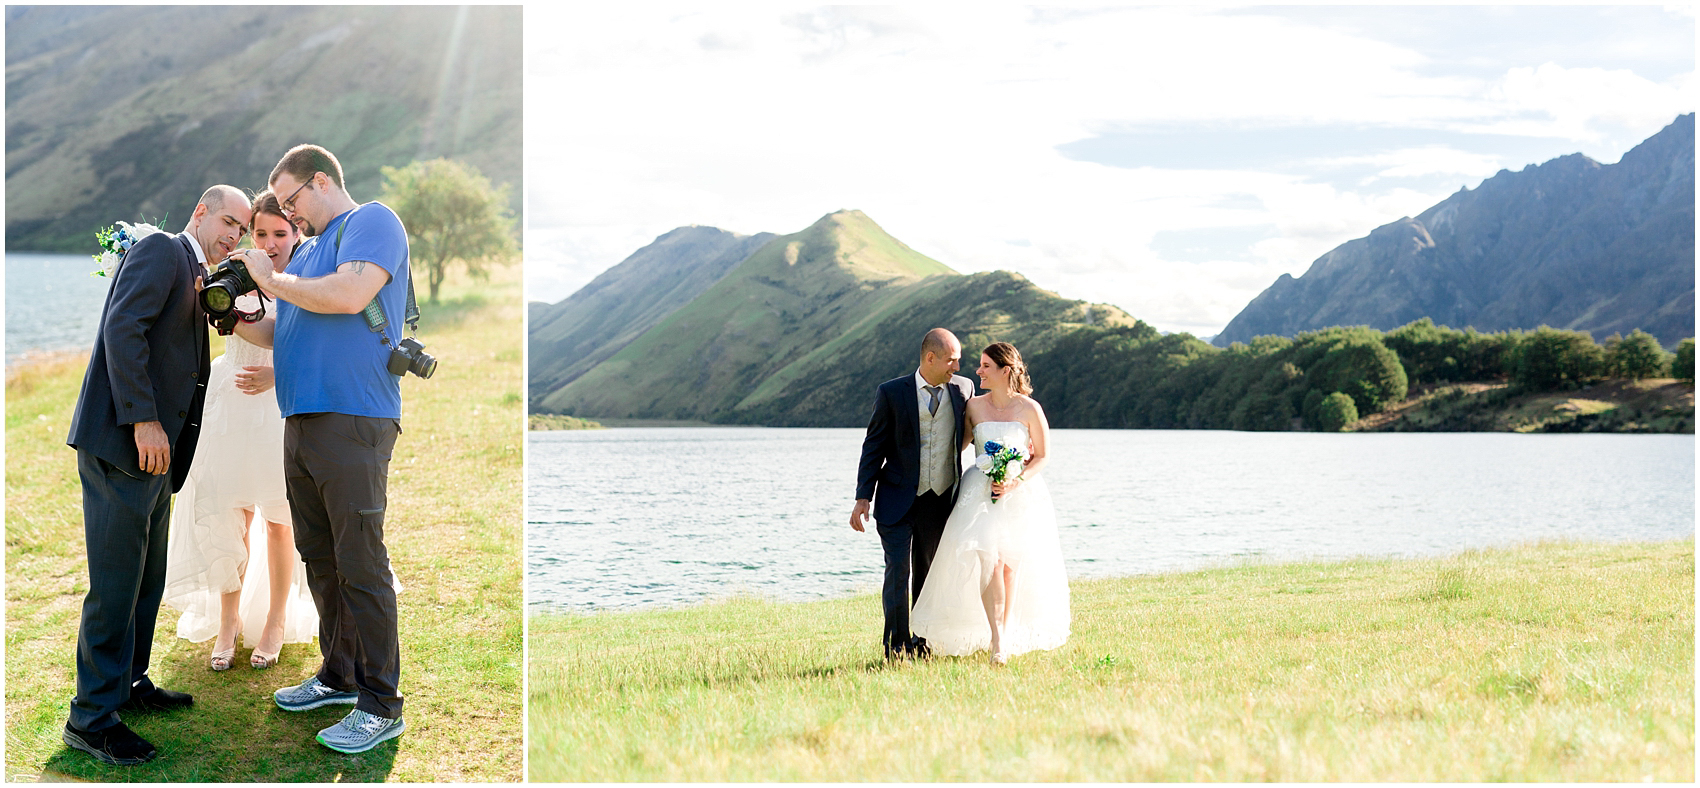 Queenstown New Zealand Wedding Photographer Bruna Fabricio Smetona Photo-0056.jpg